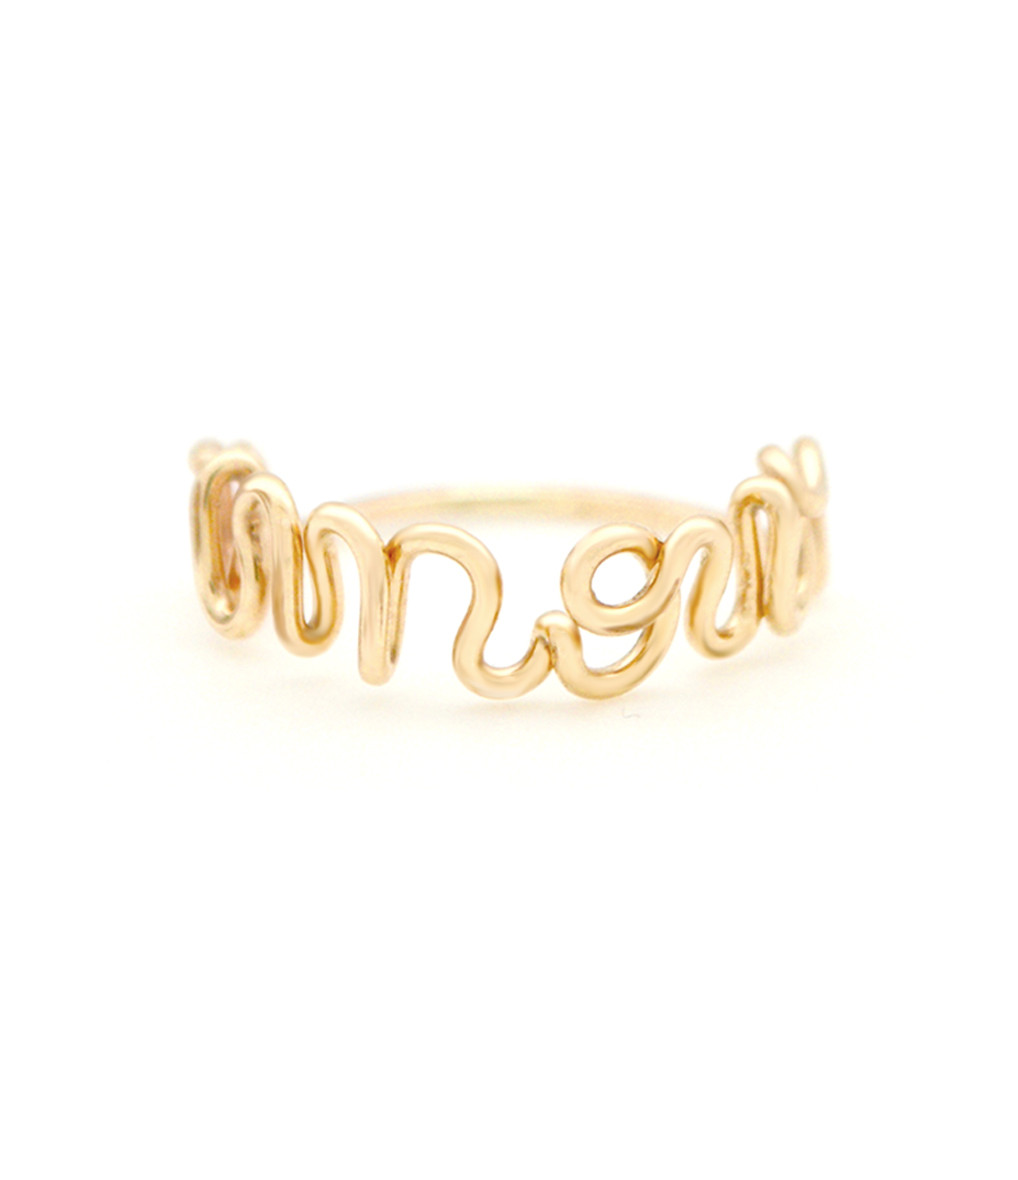 ATELIER PAULIN - Bague Amour Gold Filled 14K